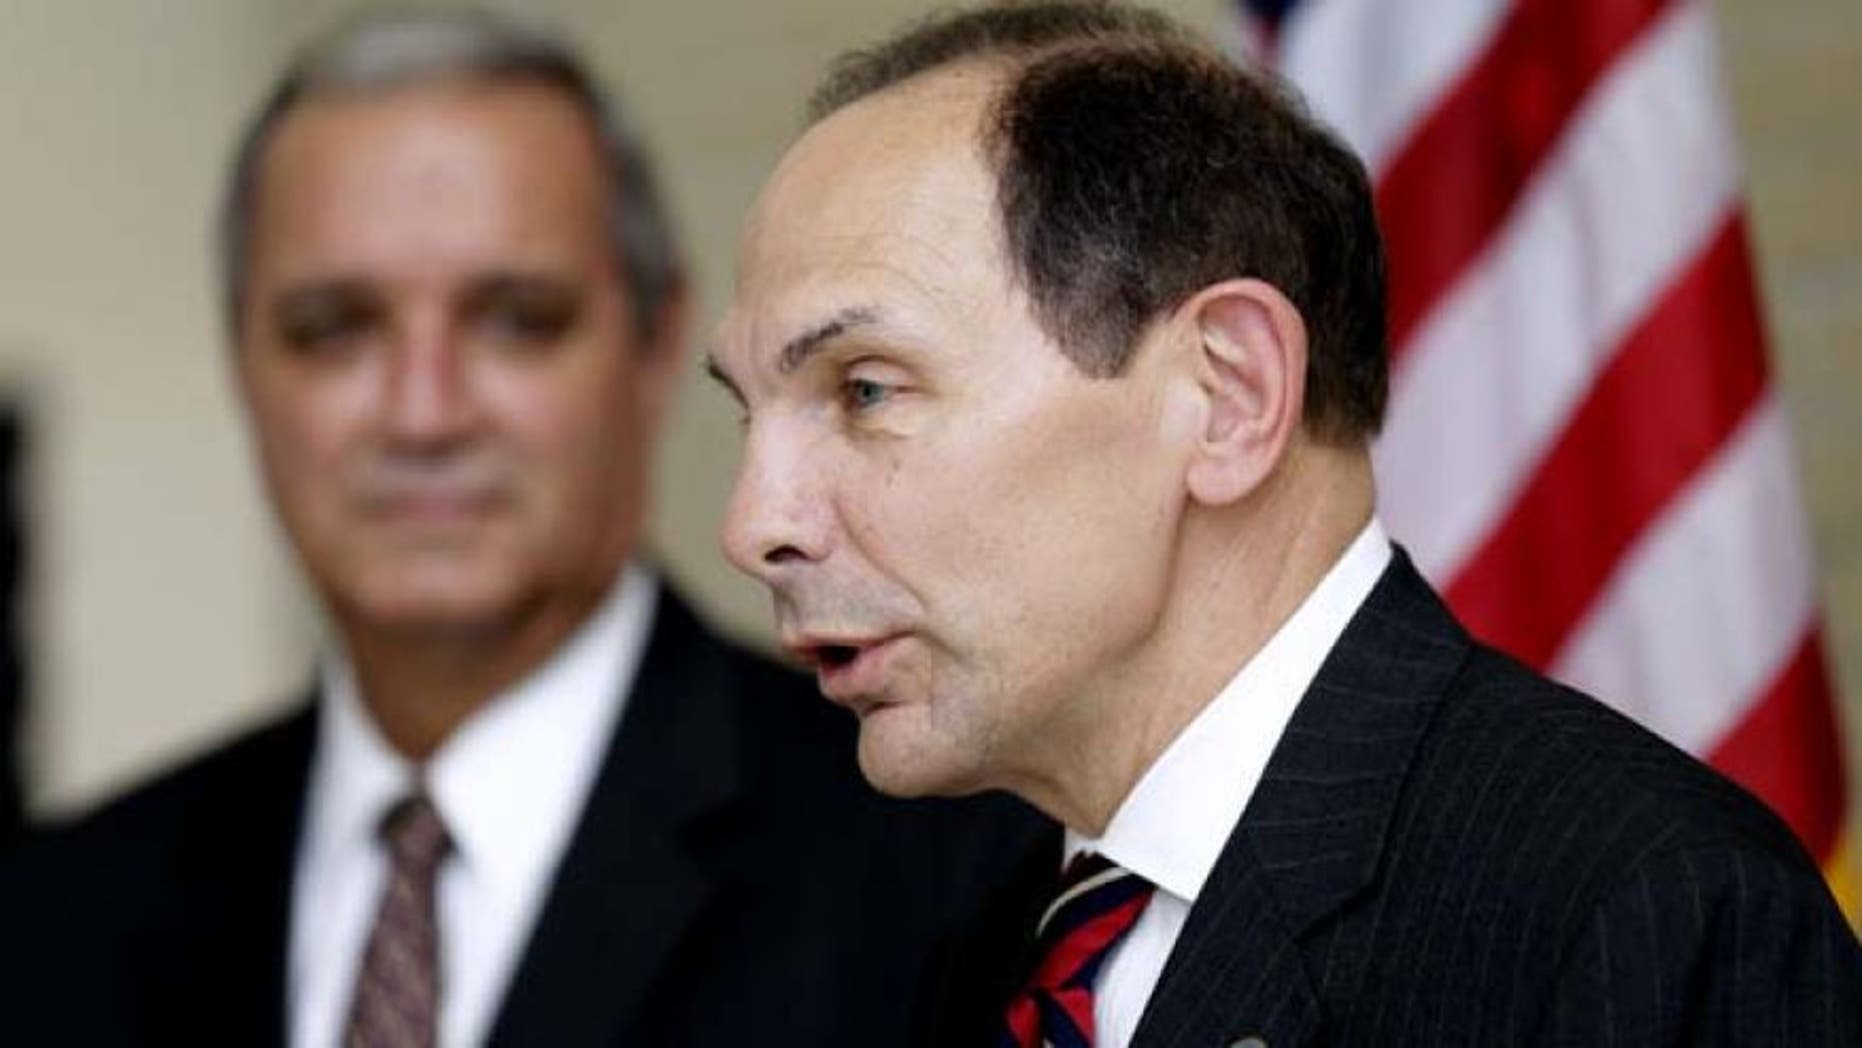 Veterans Affairs Secretary Robert A. McDonald recently claimed that he 'spoke incorrectly' about his service in the military.(AP Photo/Chris O'Meara)